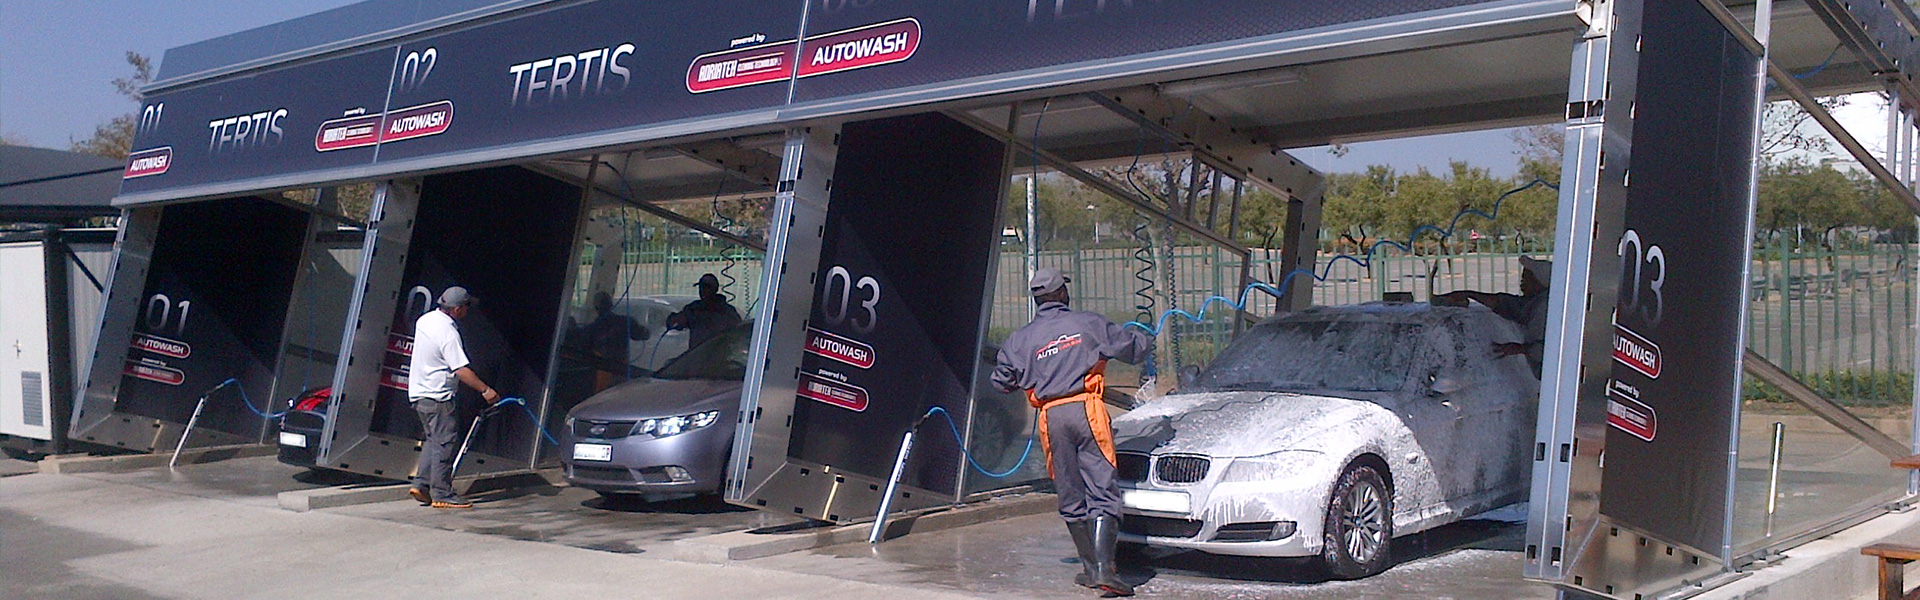 car-wash-autowash-northgate